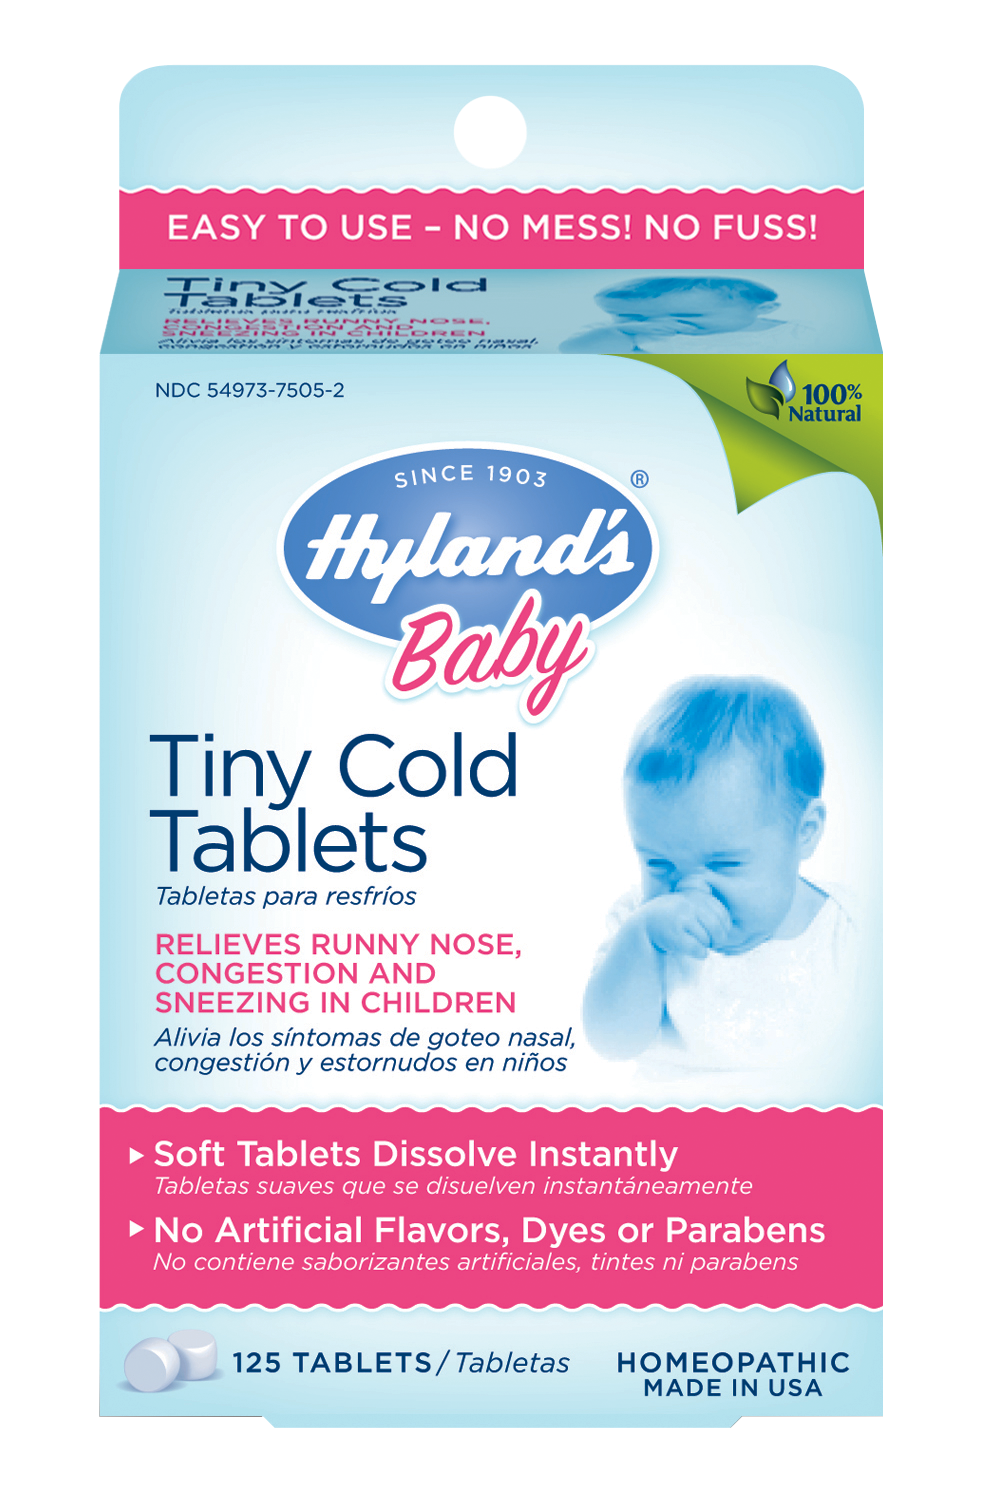 Baby Tiny Cold Tablets Best Things Ever They Really Do Help With Images Baby Cold Baby Cold Remedies Sick Baby